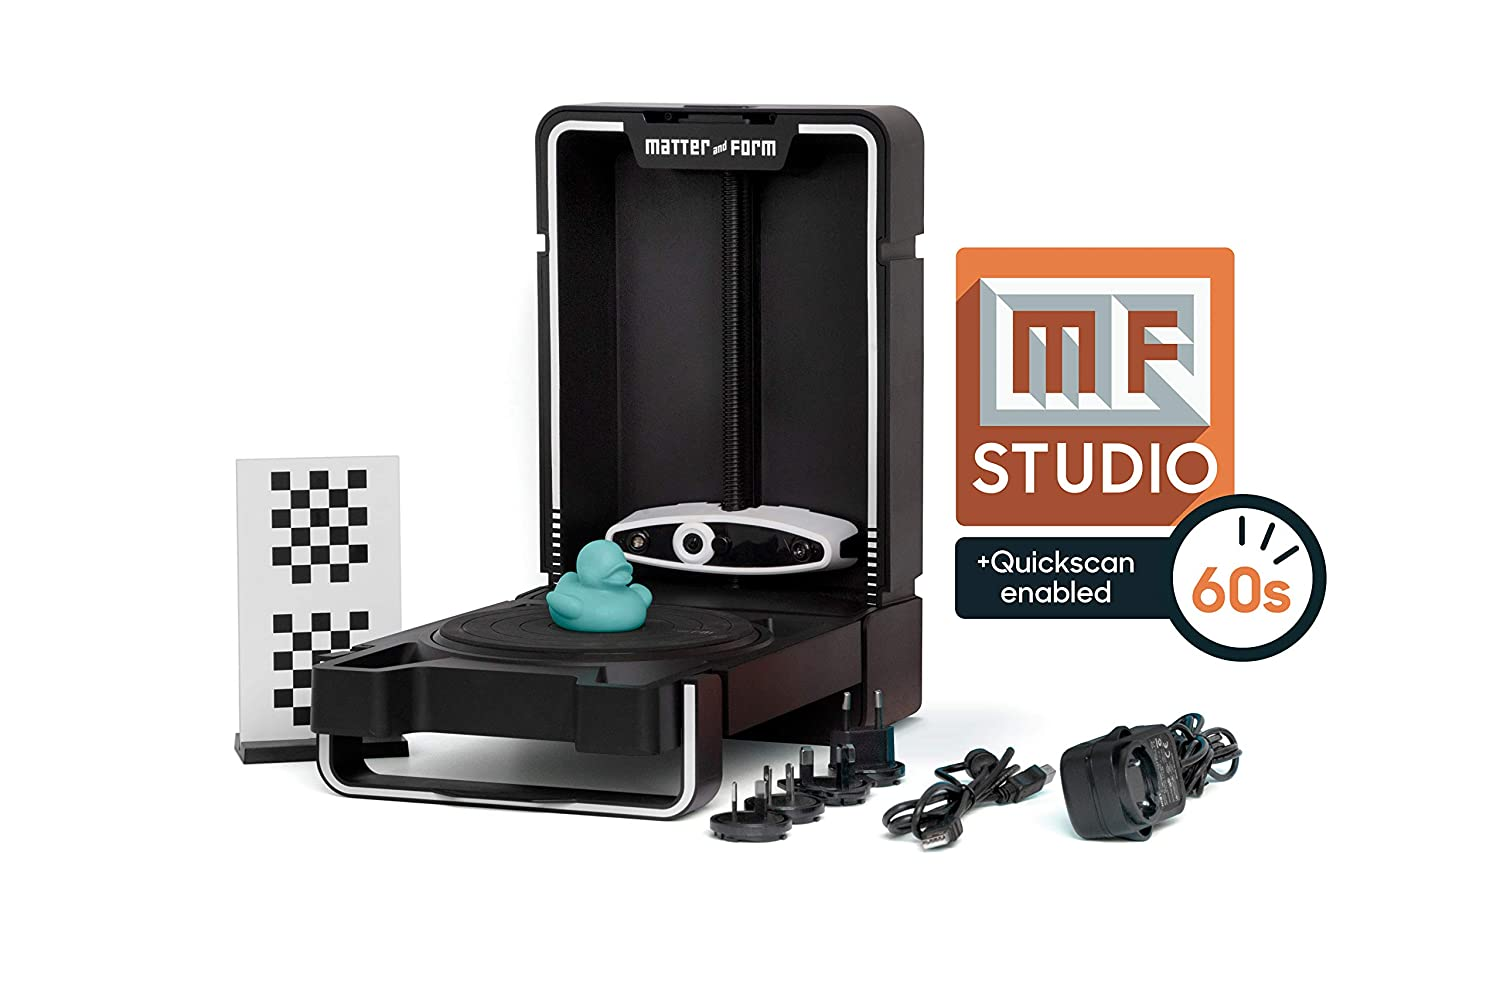 Matter & Form MFS1V2 3D Scanner V2 +Quickscan, Negro: Amazon.es ...